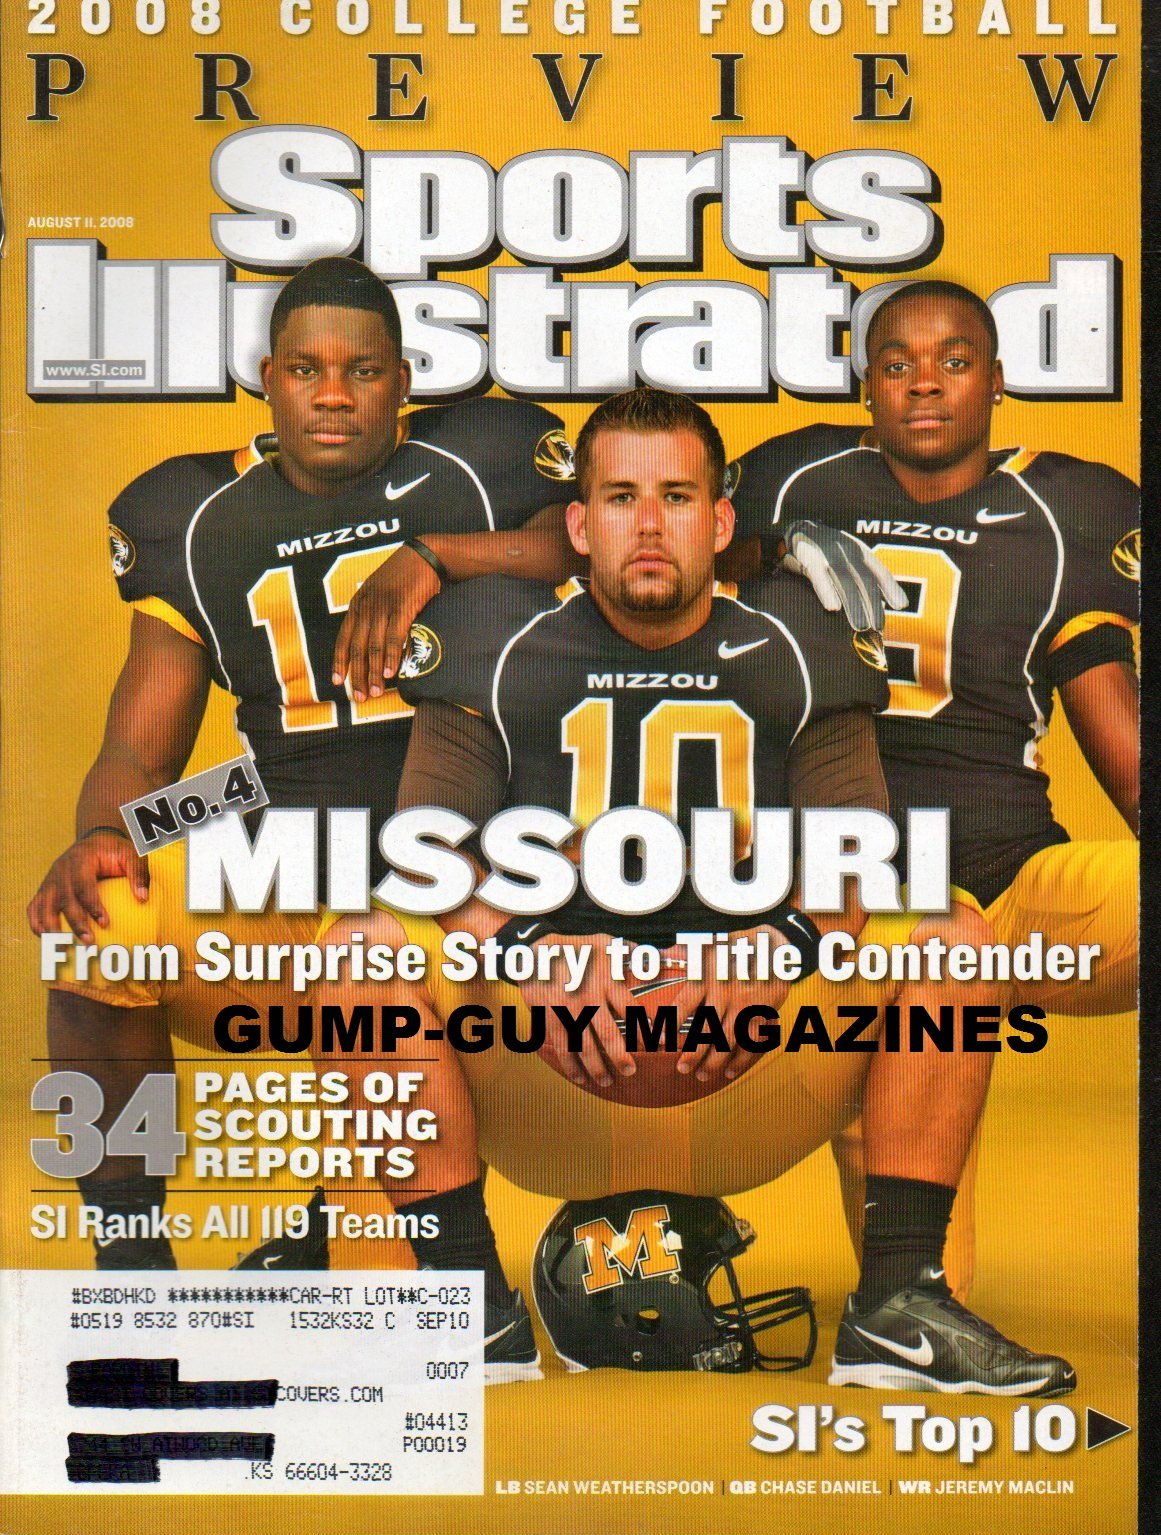 Sports Illustrated August 11 2008 COLLEGE FOOTBALL PREVIEW Missouri From Surprise Story To Title Contender WE RANK ALL 119 TEAMS Sean Weatherspoon